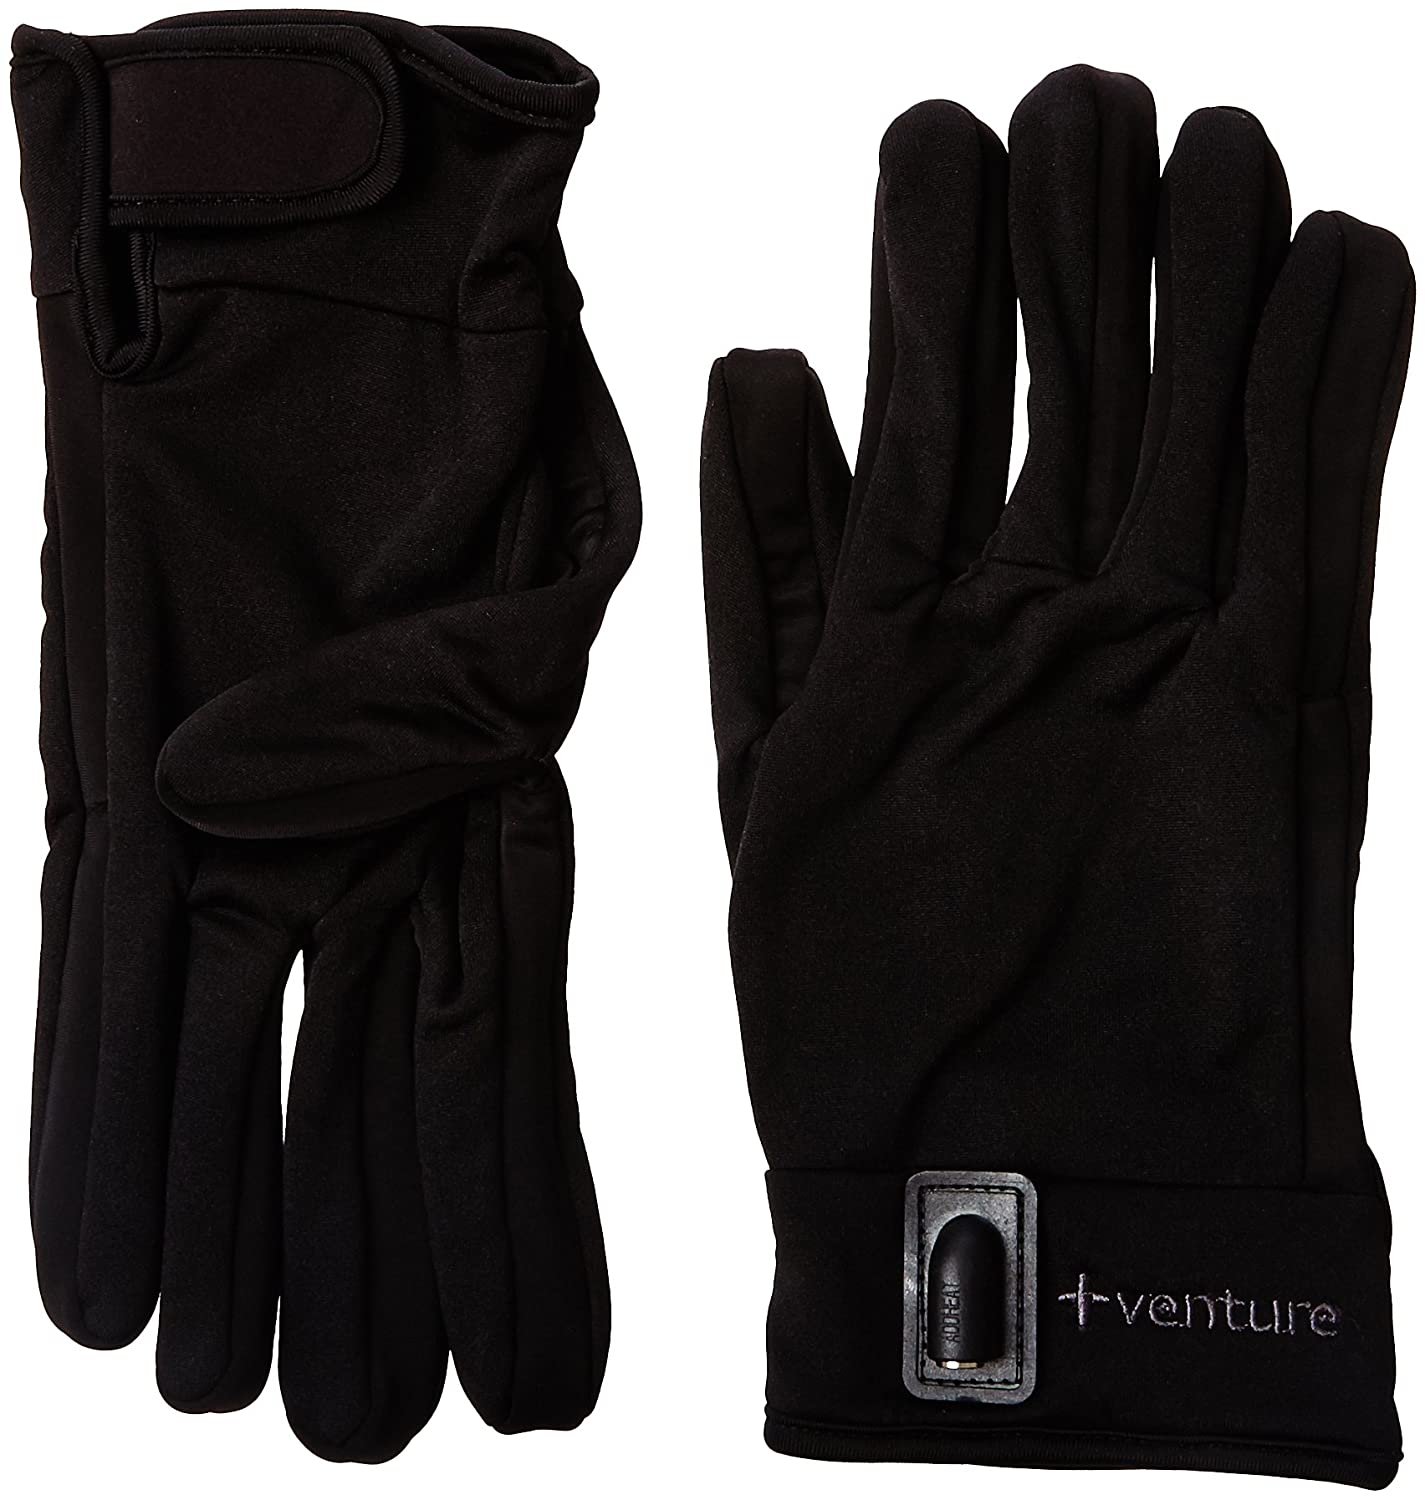 Venture Heated Clothing MC-60 XLG Motorcycle Glove Liners